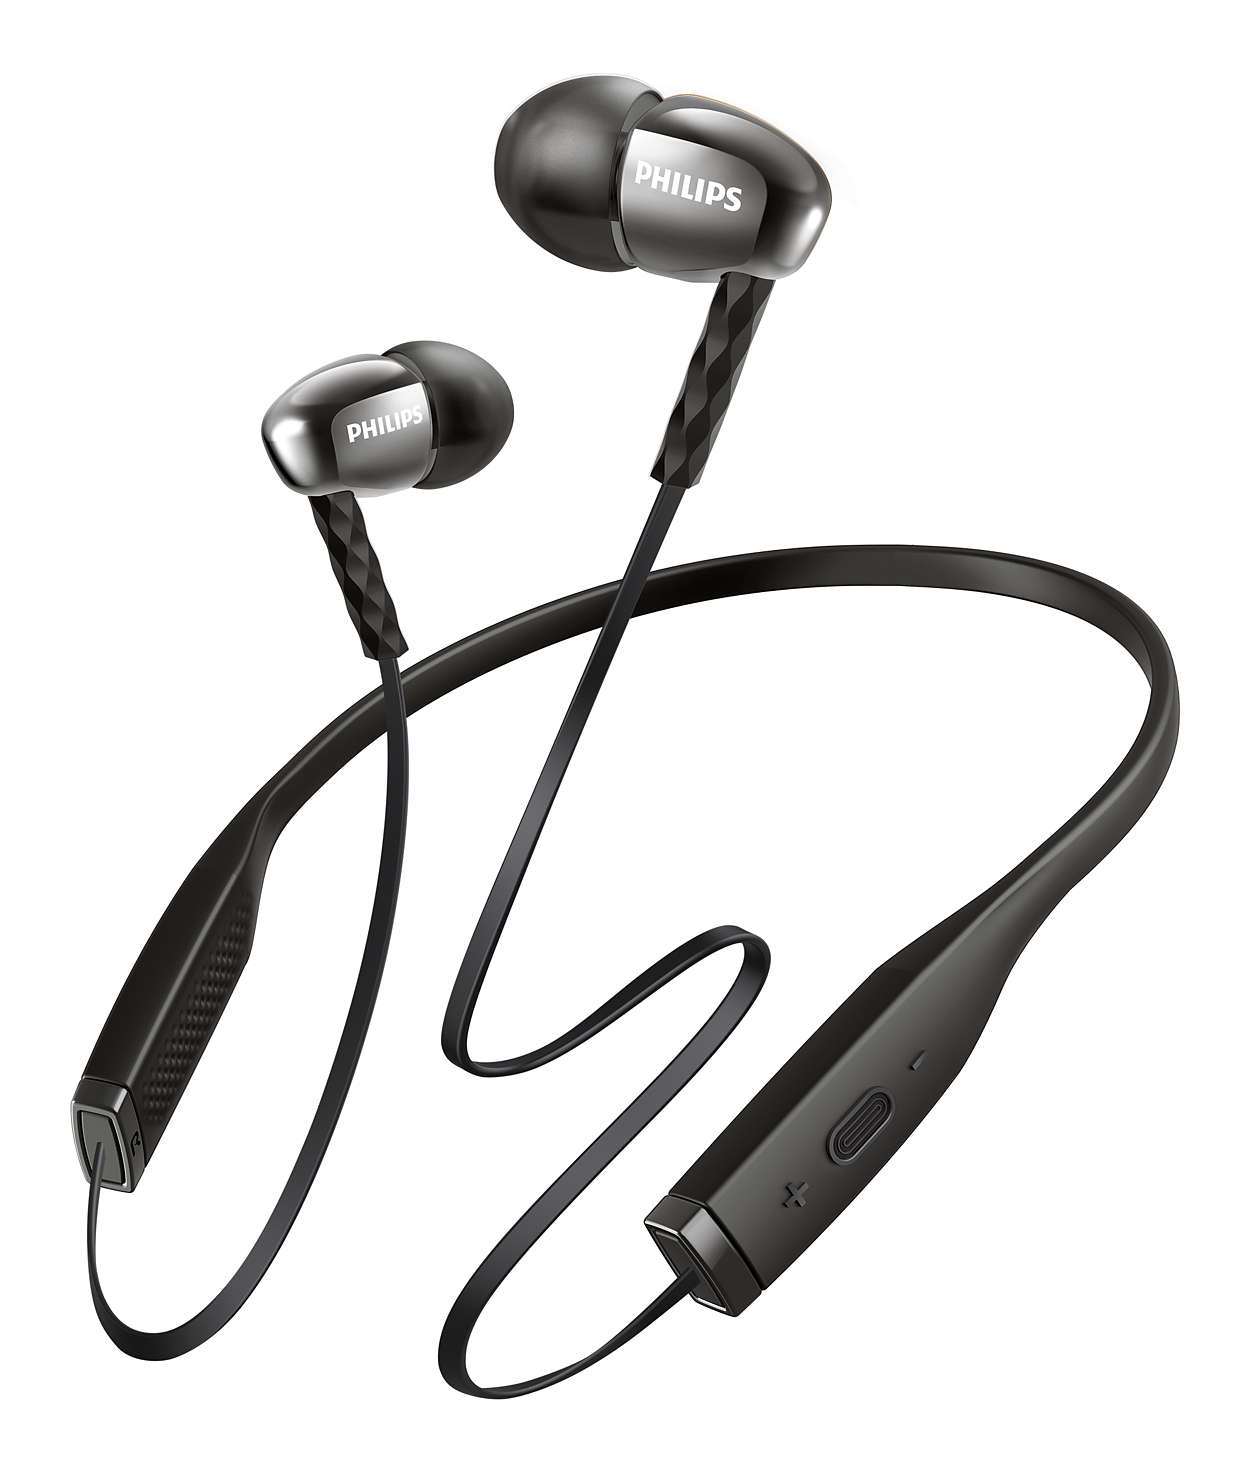 356156c7bc5 Bluetooth Headset SHB5950BK/00 | Philips